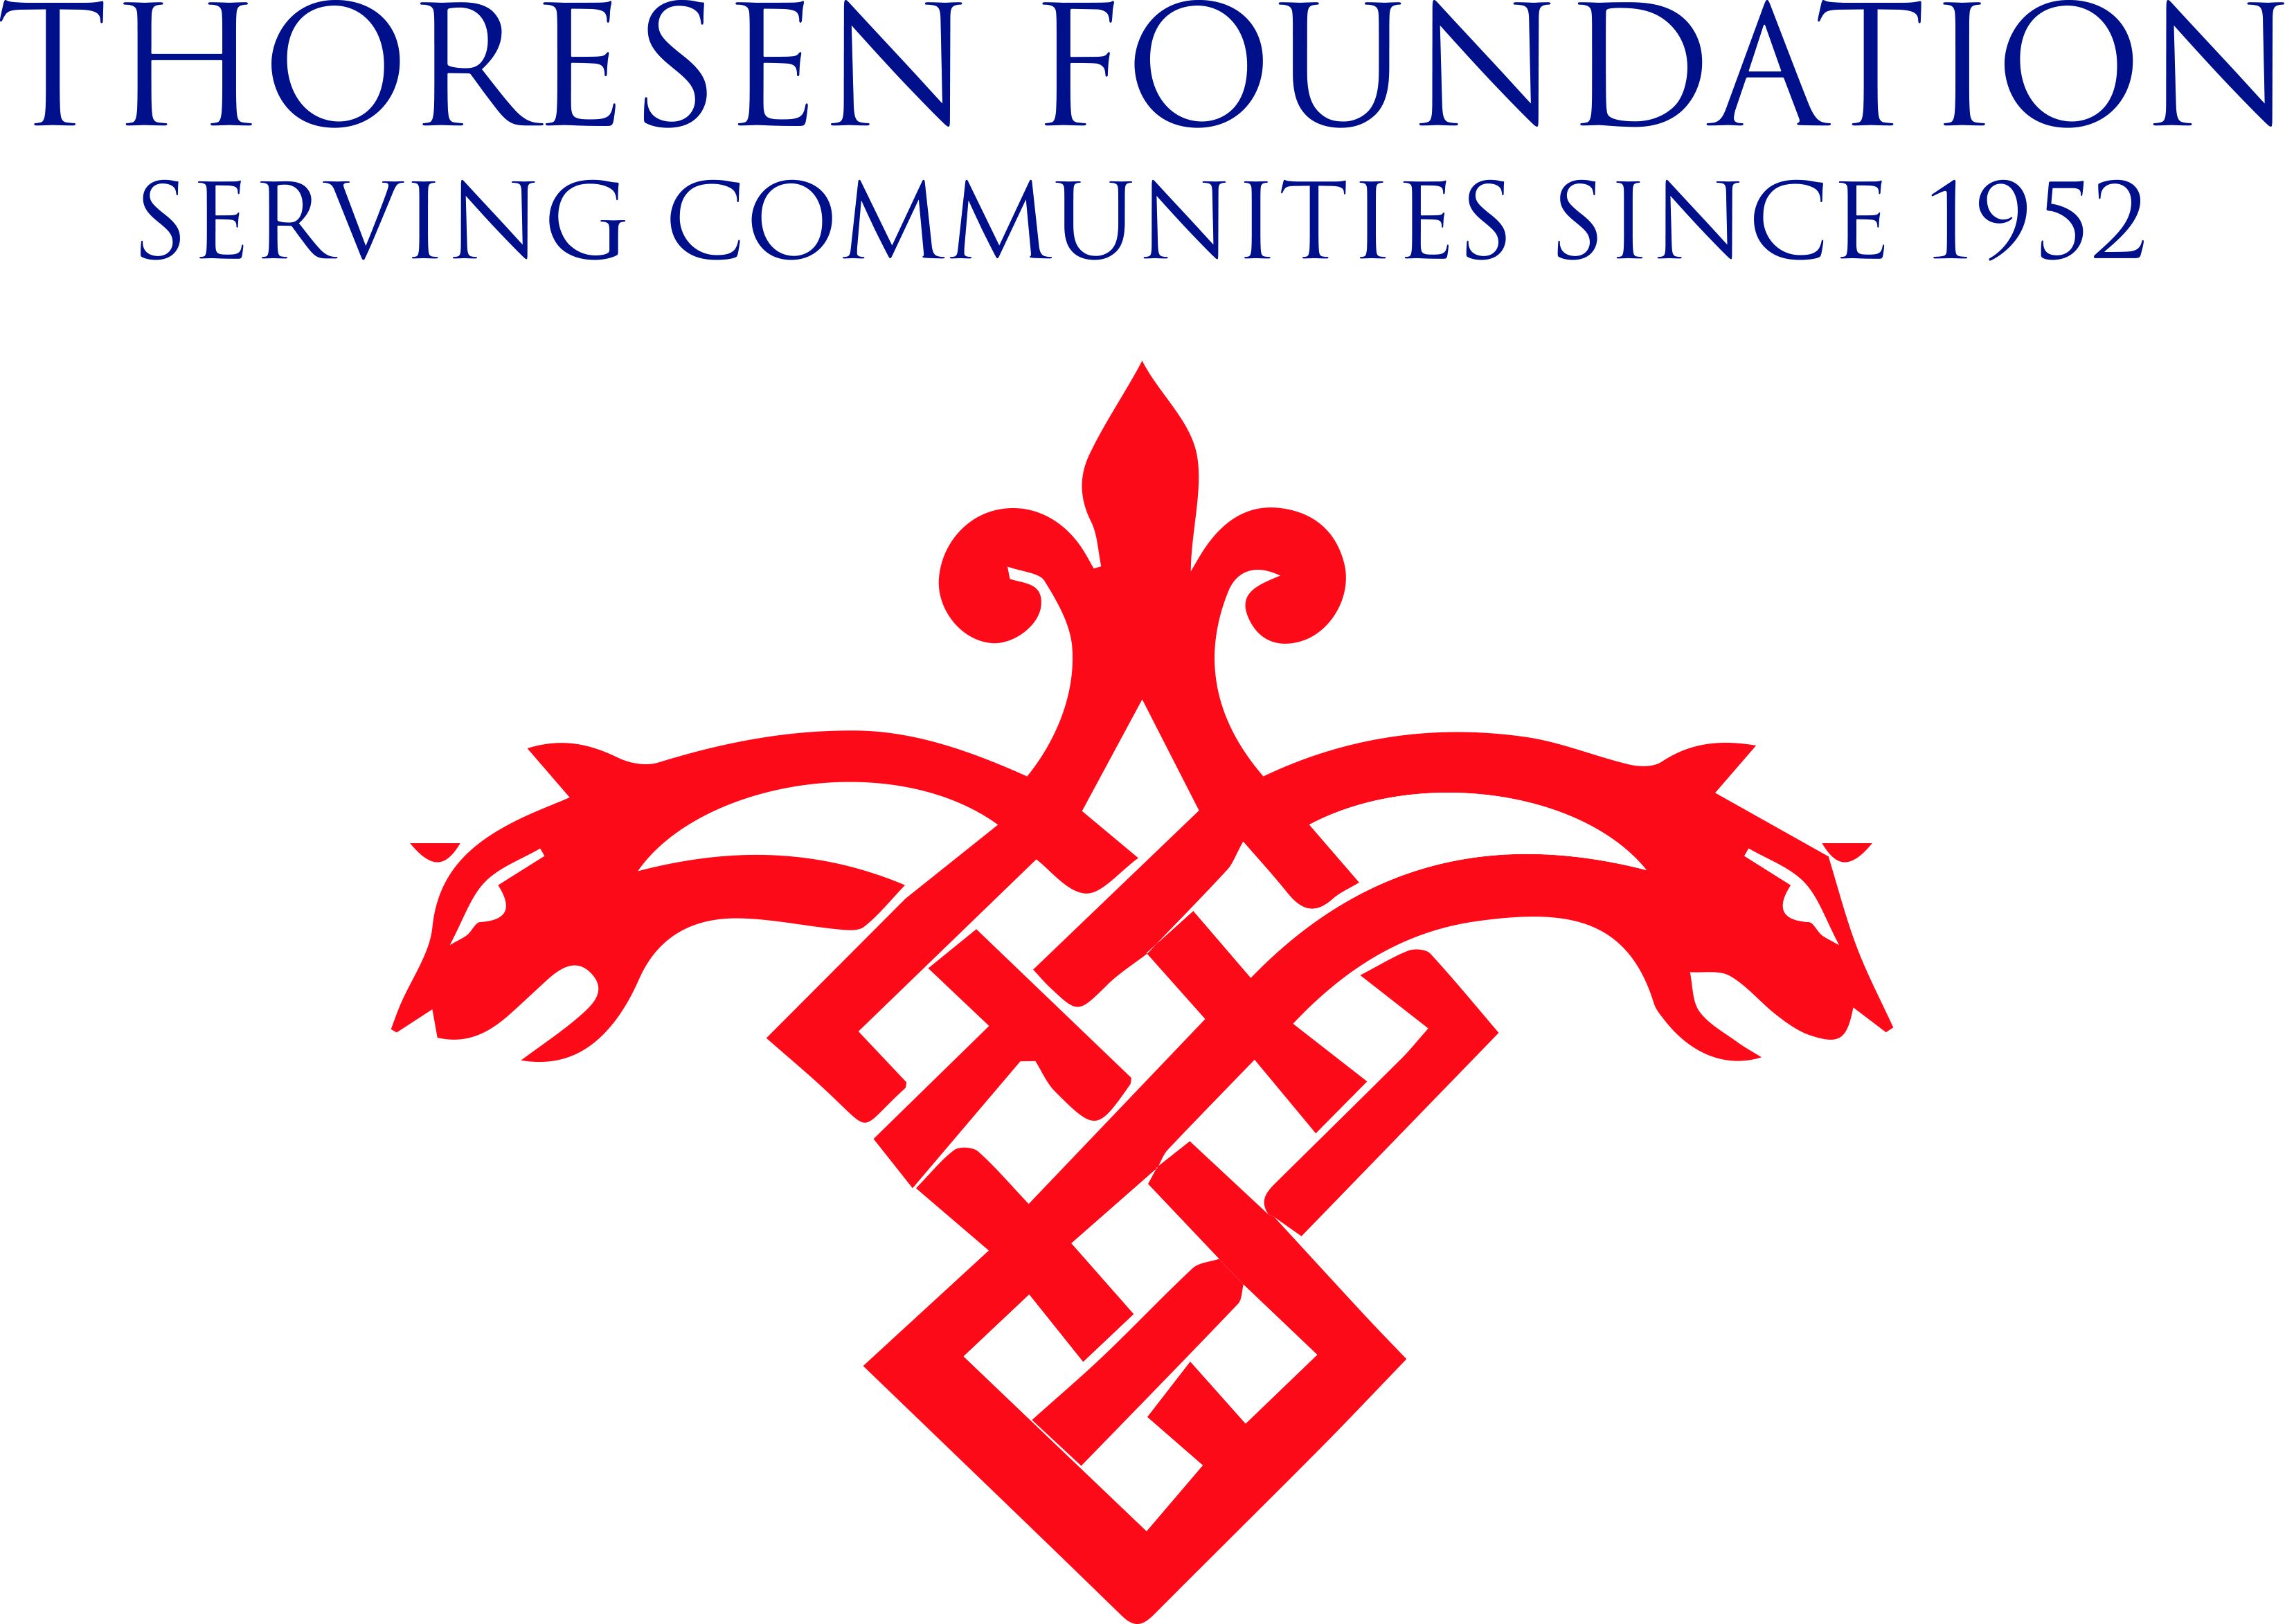 Thoresen Foundation